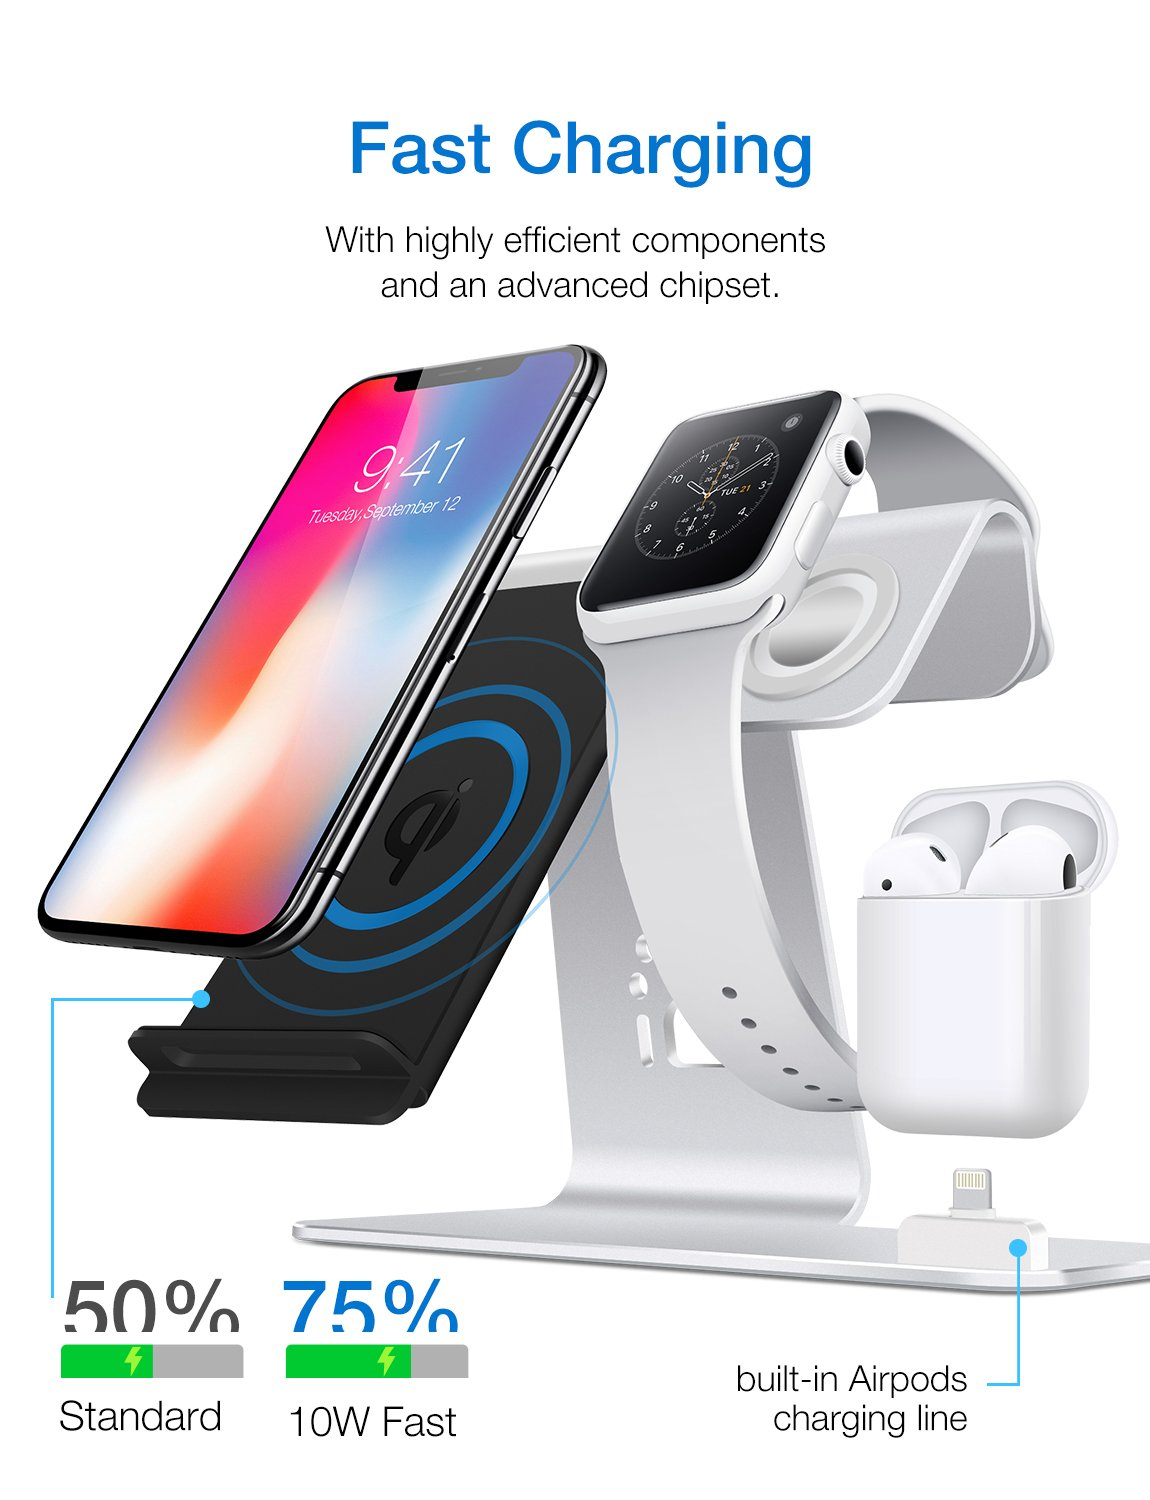 Bestand H05-Grey 3 in 1 Aluminum Apple iWatch Stand, Airpods Charging Station, Qi Fast Wireless Charger Dock for iPhone X/8/7/6s Plus Samsung S8 and other Qi-Enabled Devices, Grey by Bestand (Image #2)